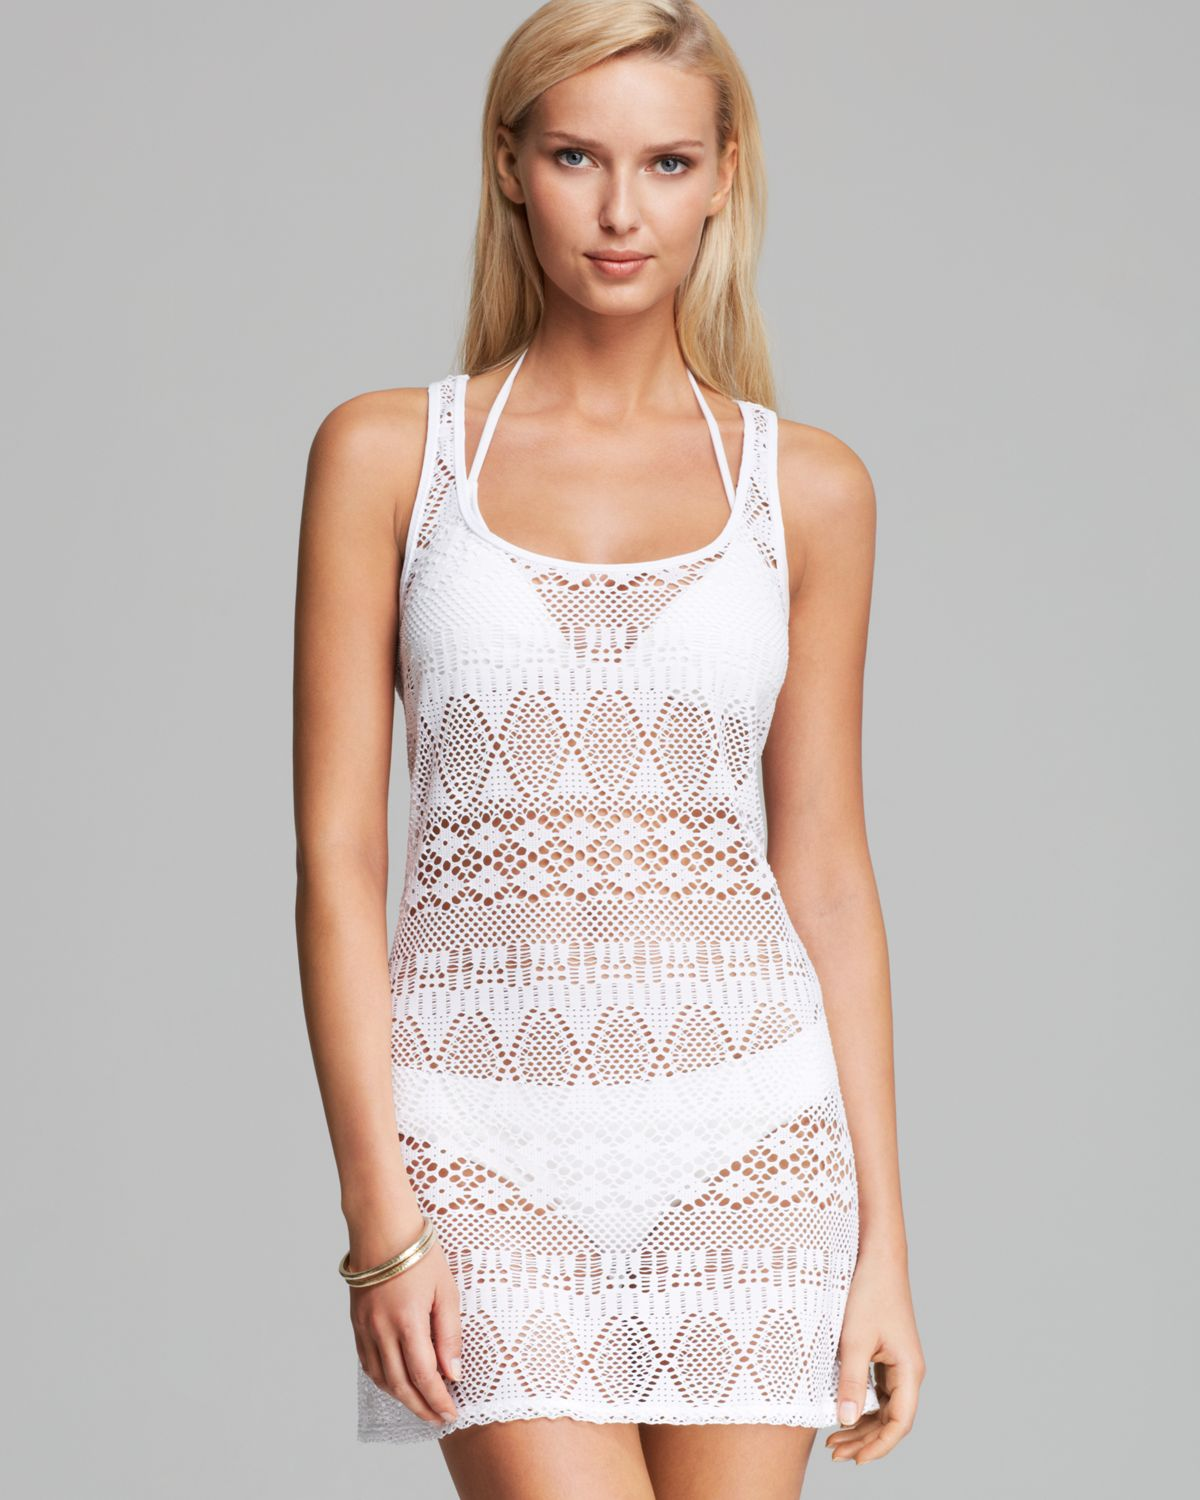 bb0b3581a Ralph Lauren Blue Label Oasis Crochet Tank Dress Swim Cover Up in ...